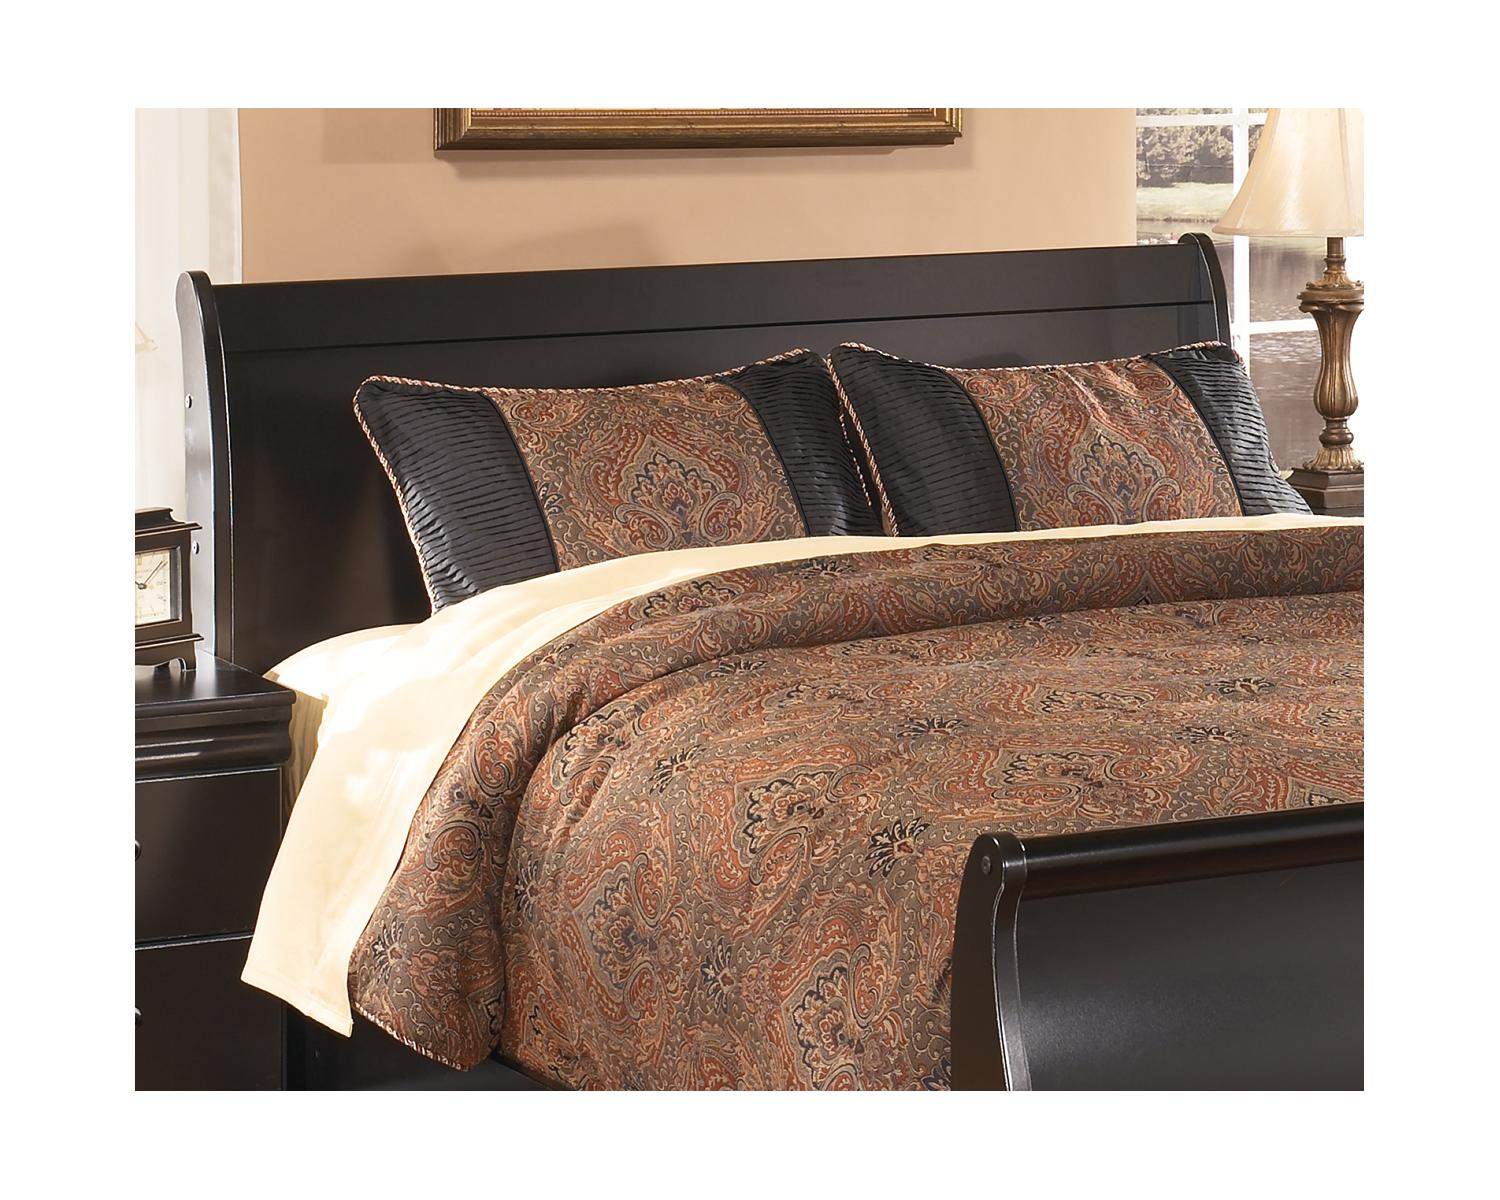 Picture of: Signature Design By Ashley Huey Vineyard Black Queen Sleigh Headboard Walmart Com Walmart Com